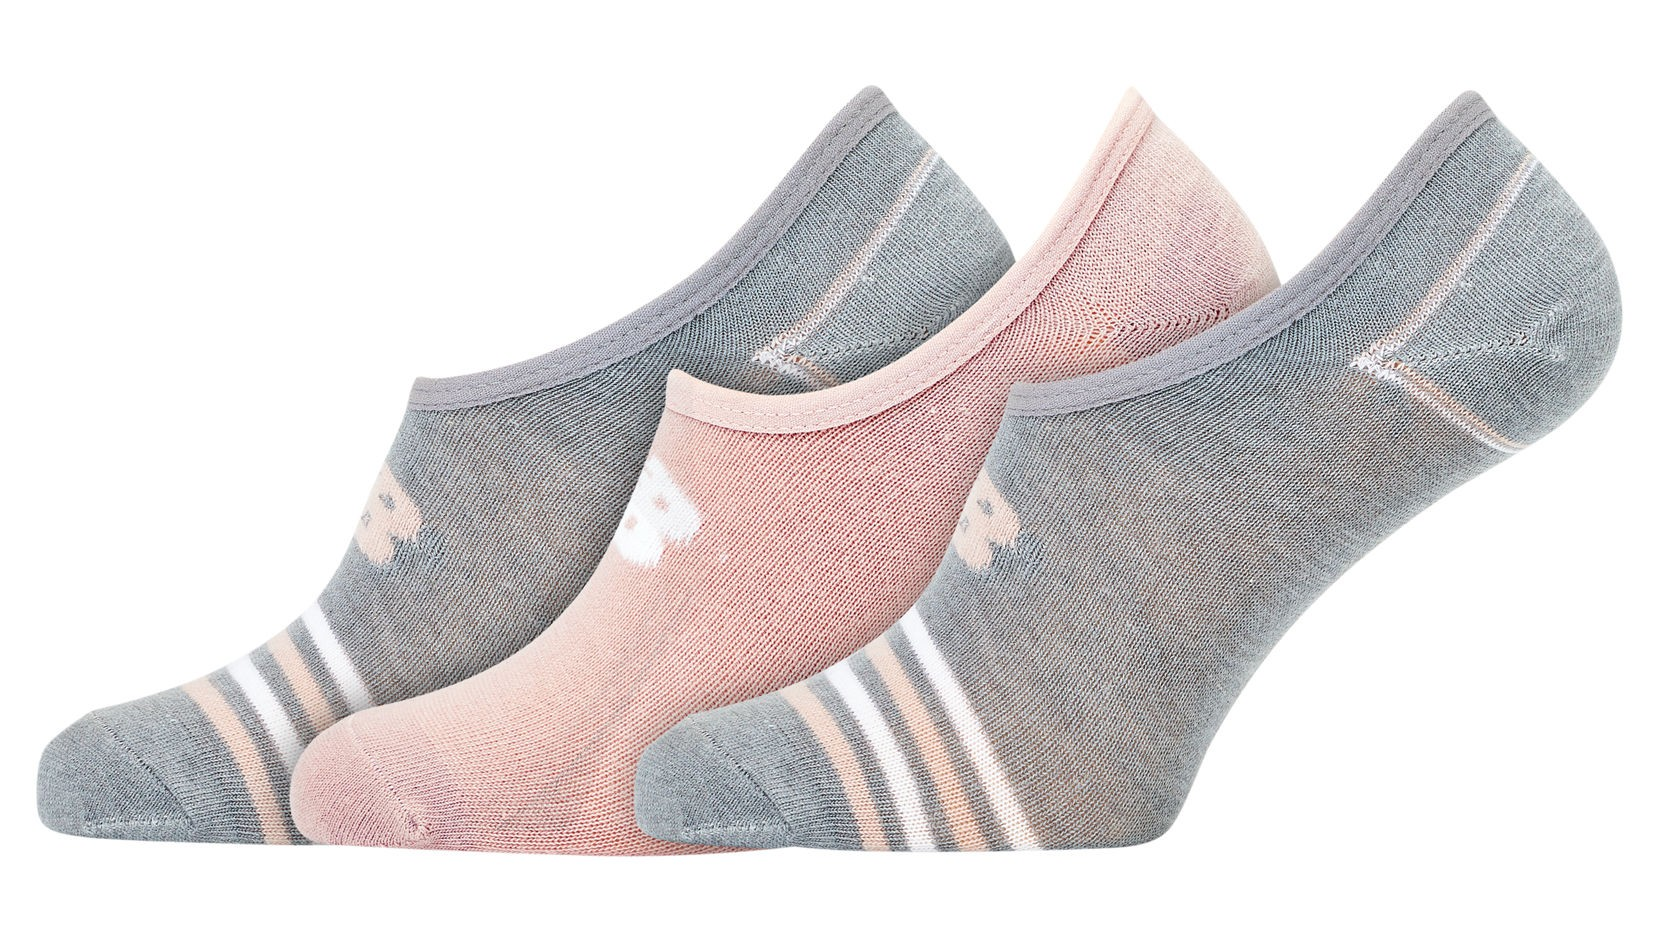 UNISEX ULTRA LOW NO SHOW SOCK 3 PAIR